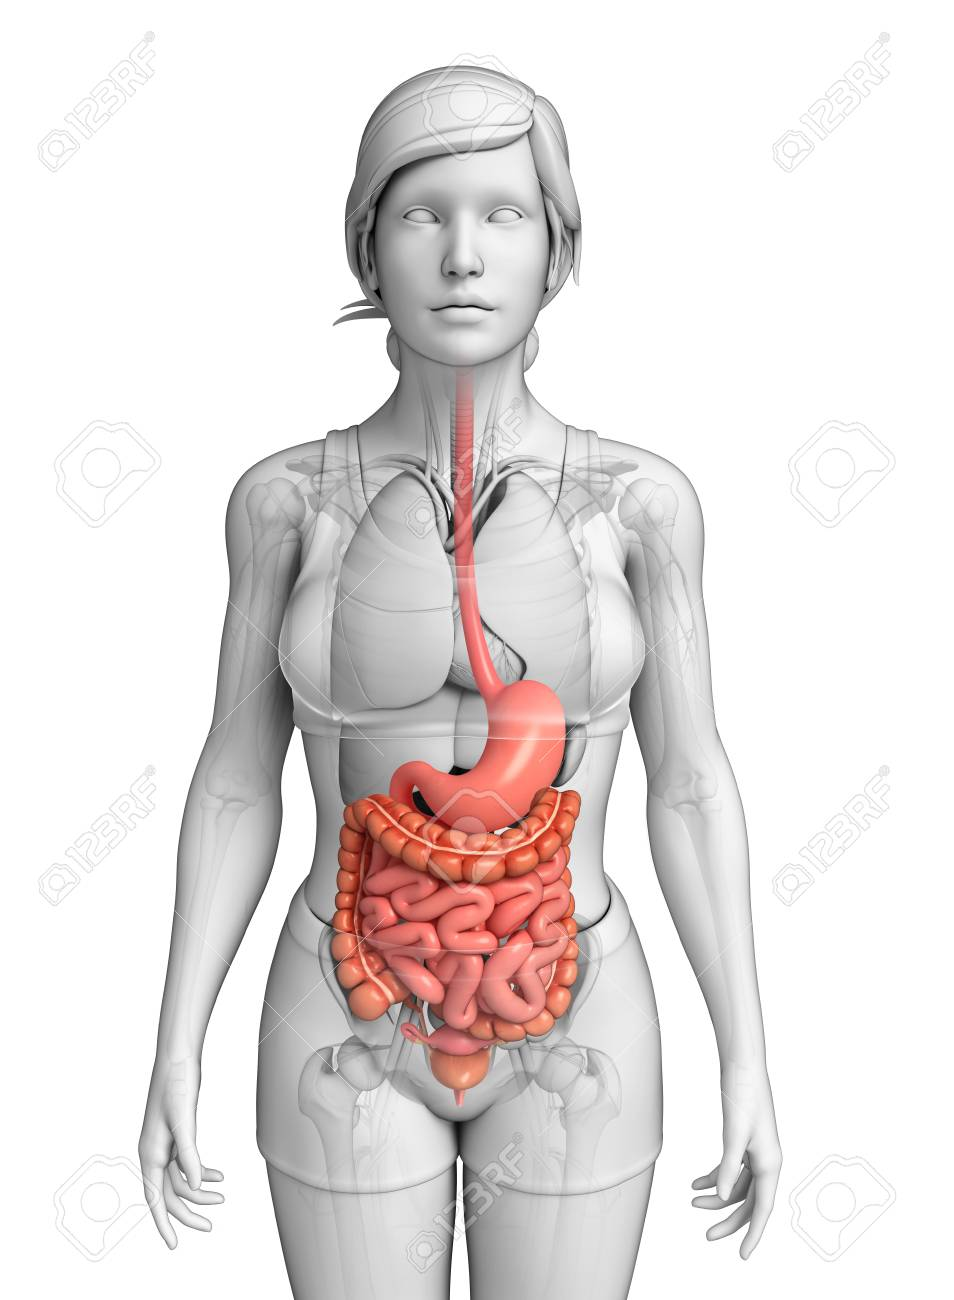 Illustration Of Female Small Intestine Anatomy Stock Photo, Picture ...